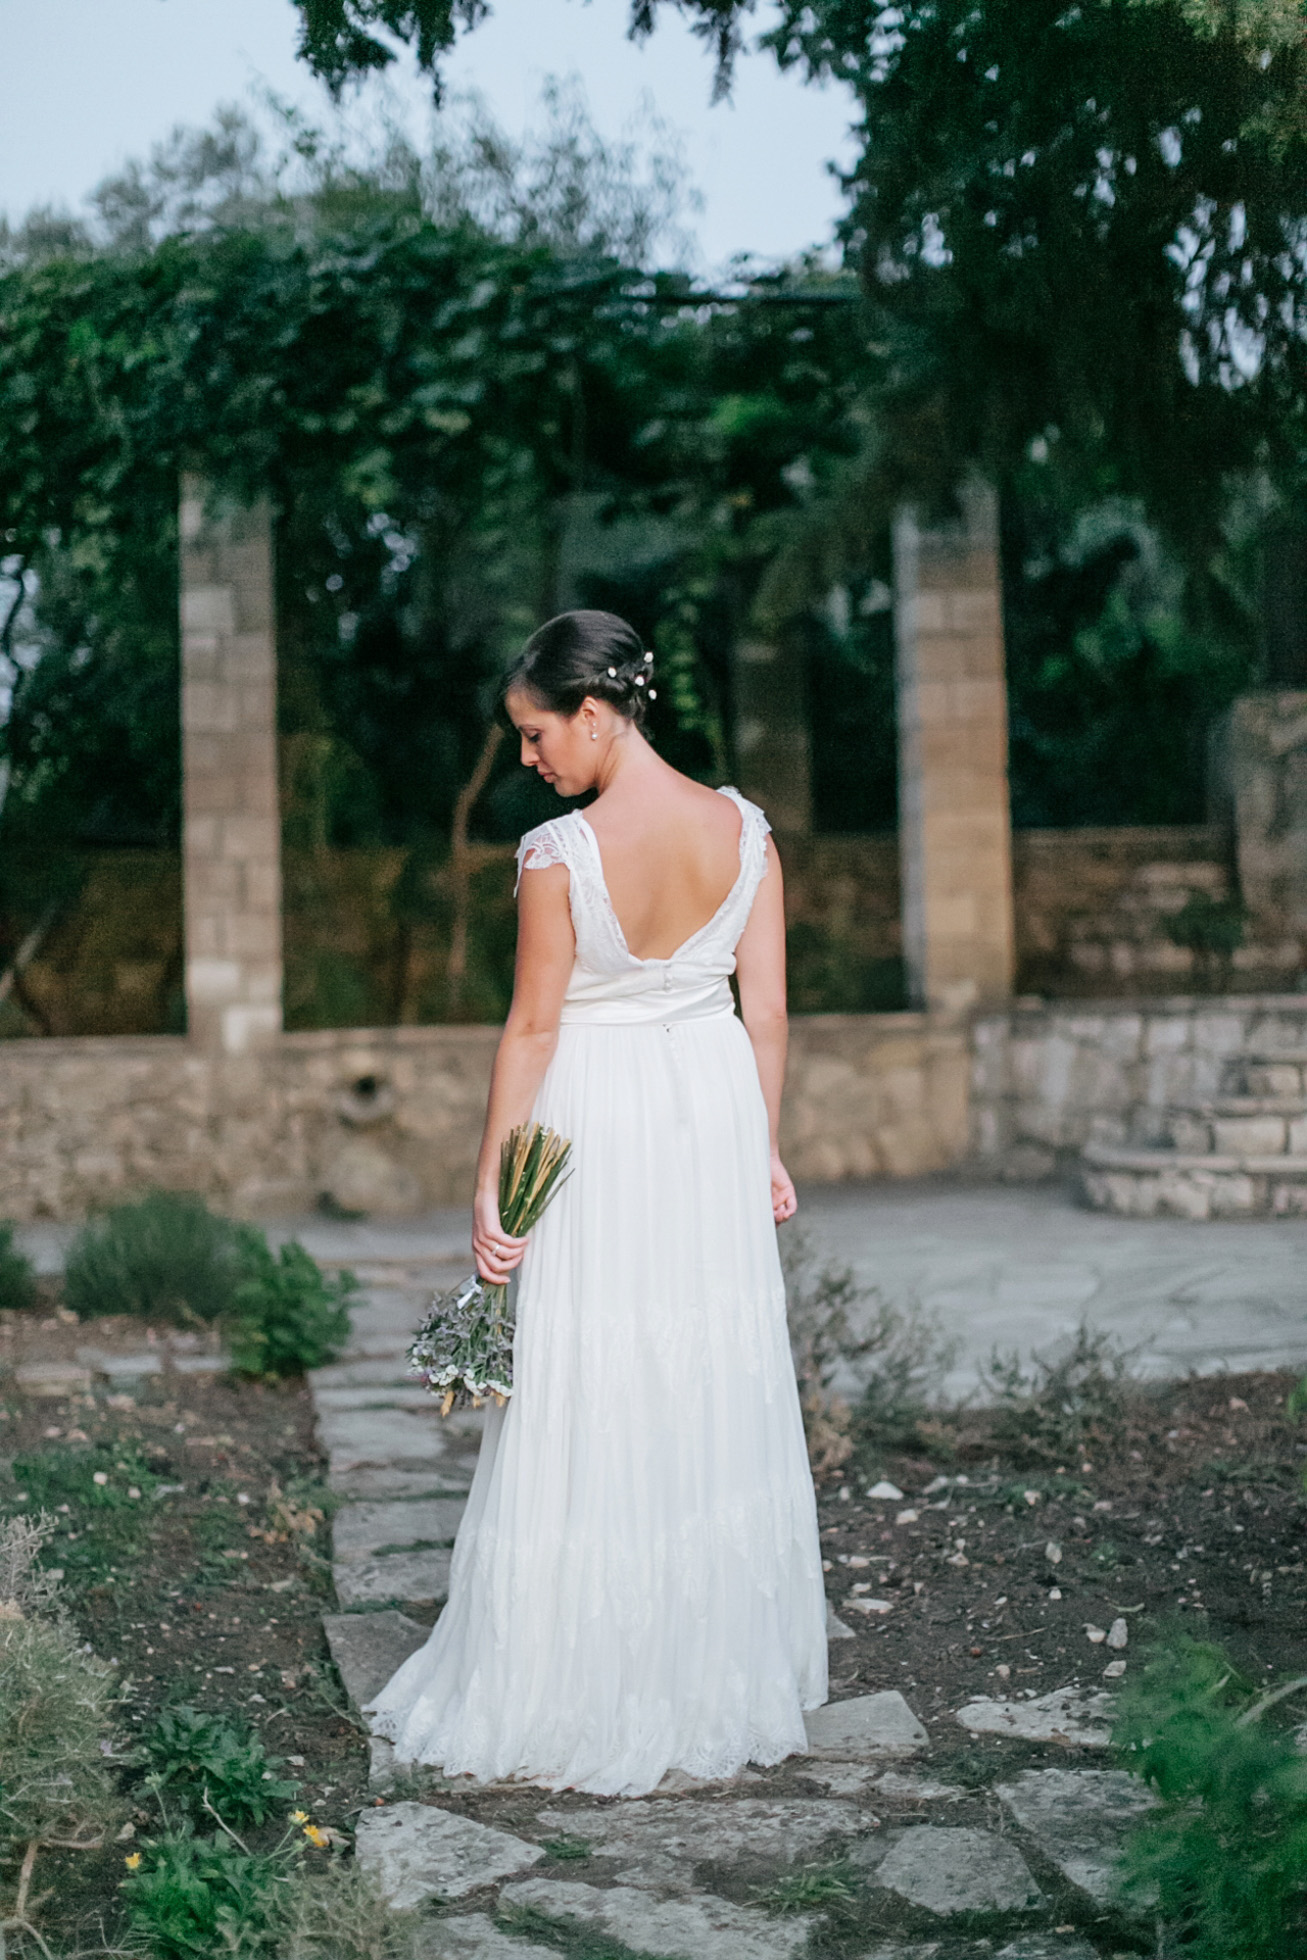 Fine art portrait of a beautiful trendy bride on her wedding day, posing for photos in Dourakis winery in Chania Crete captured by wedding photographer team.